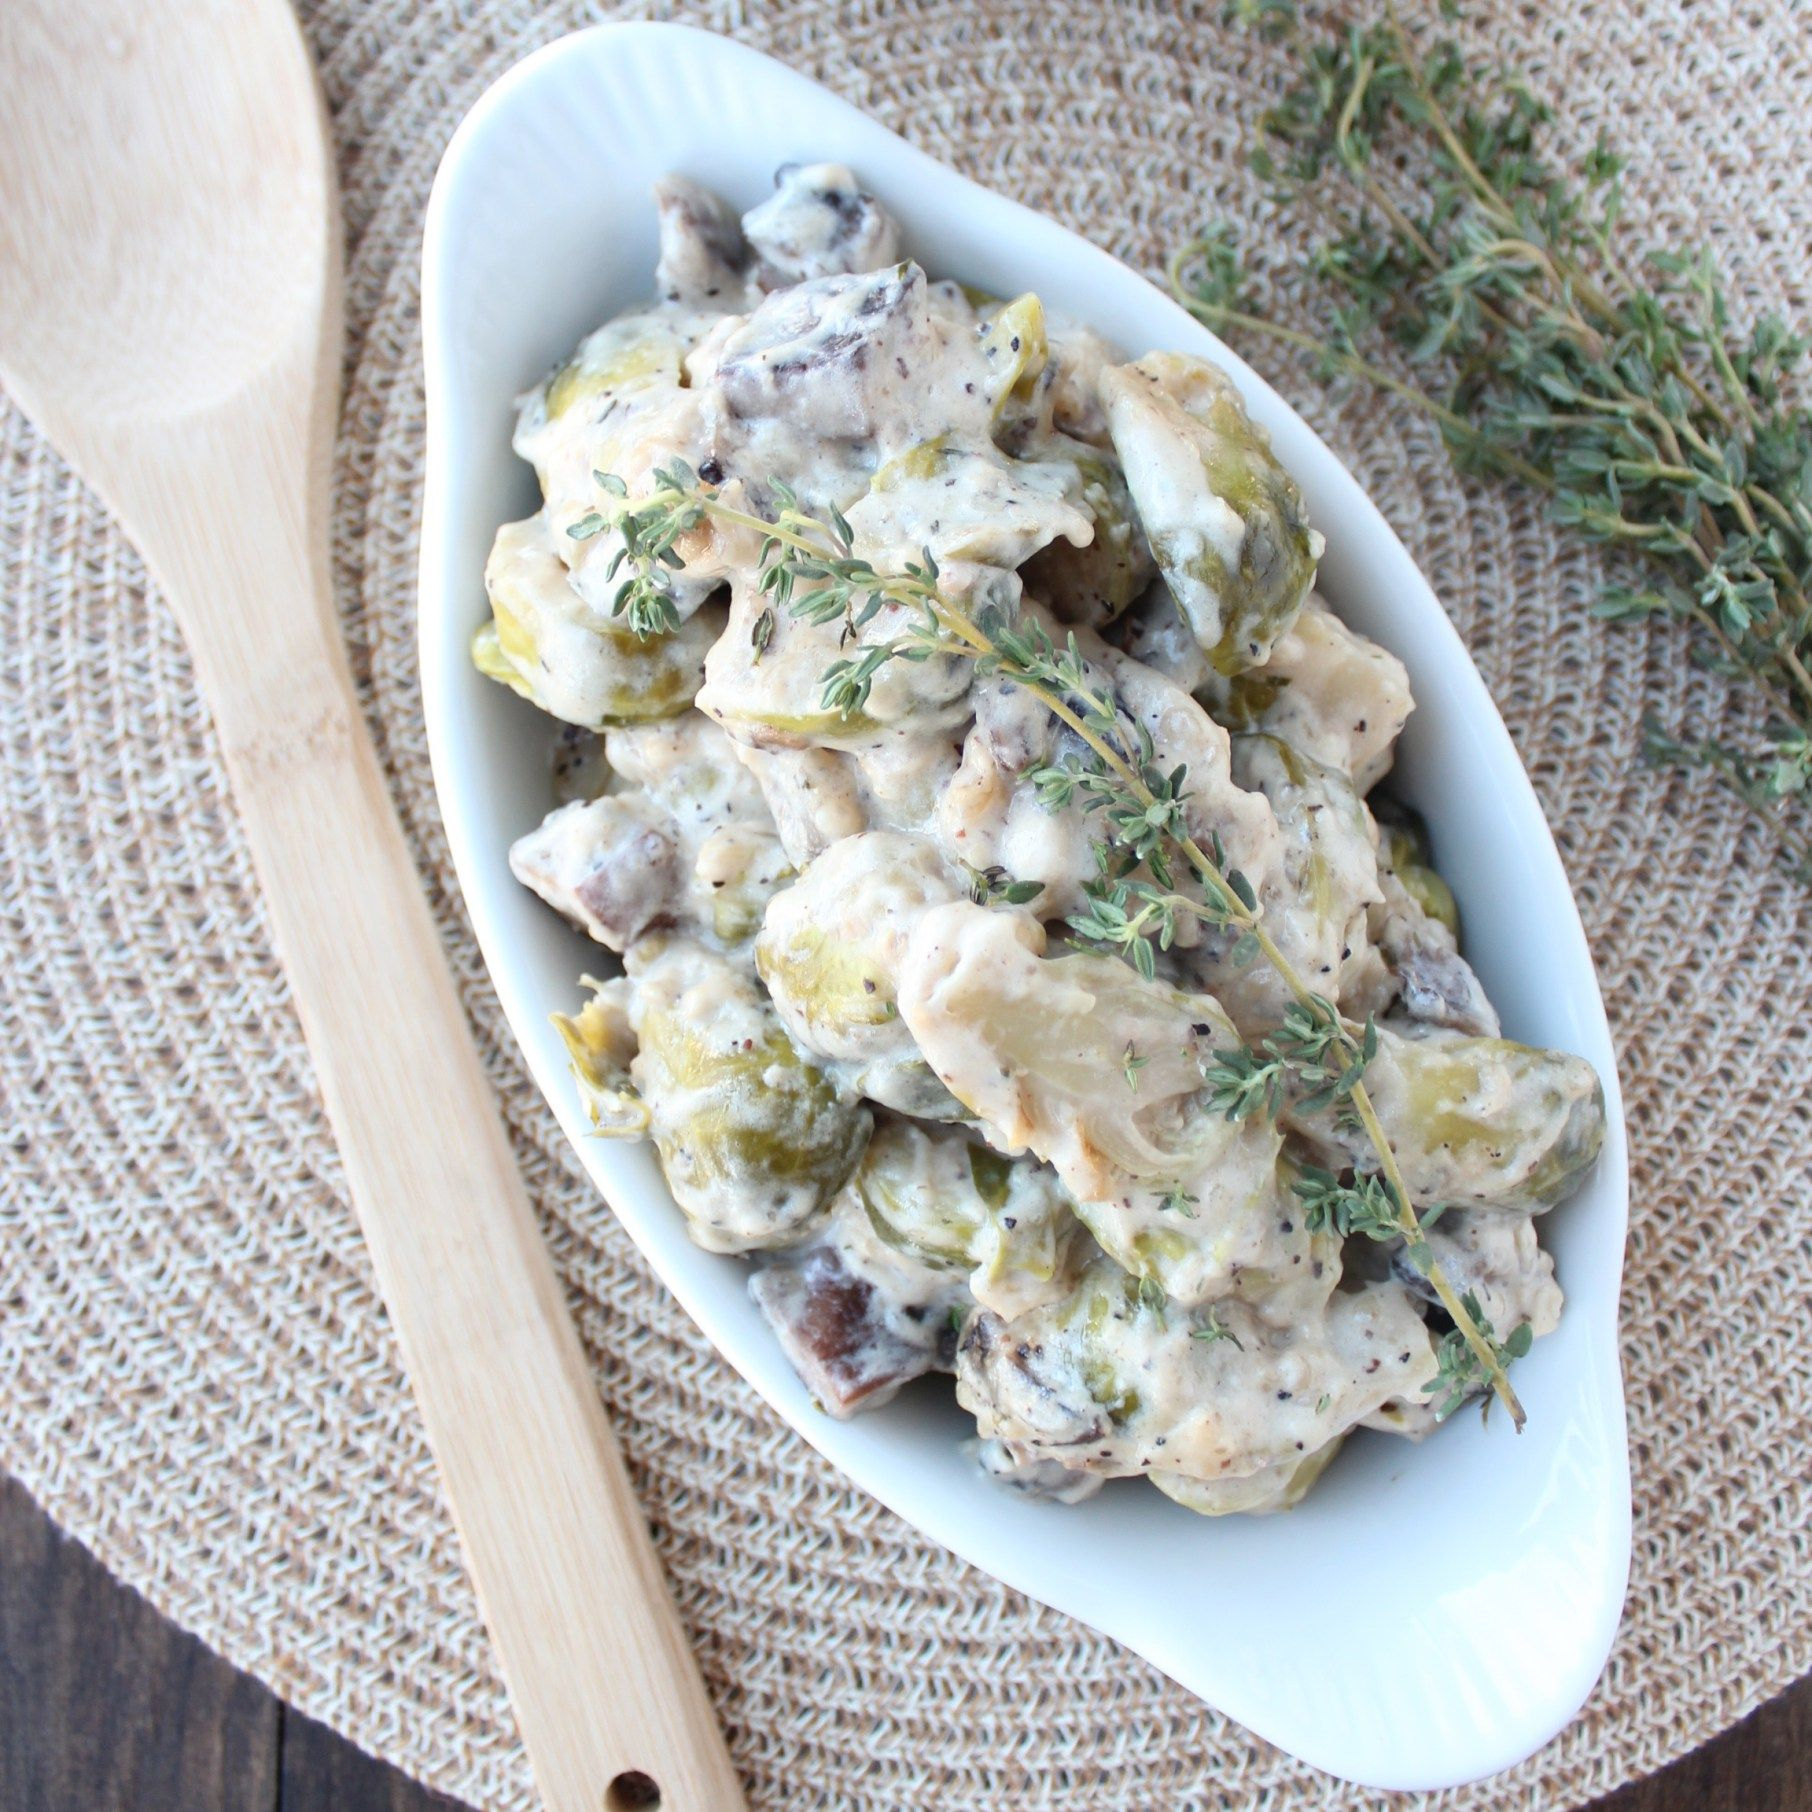 Brunch Style Portobello Mushrooms Recipe: Portobello Mushroom Brussels Sprouts Casserole